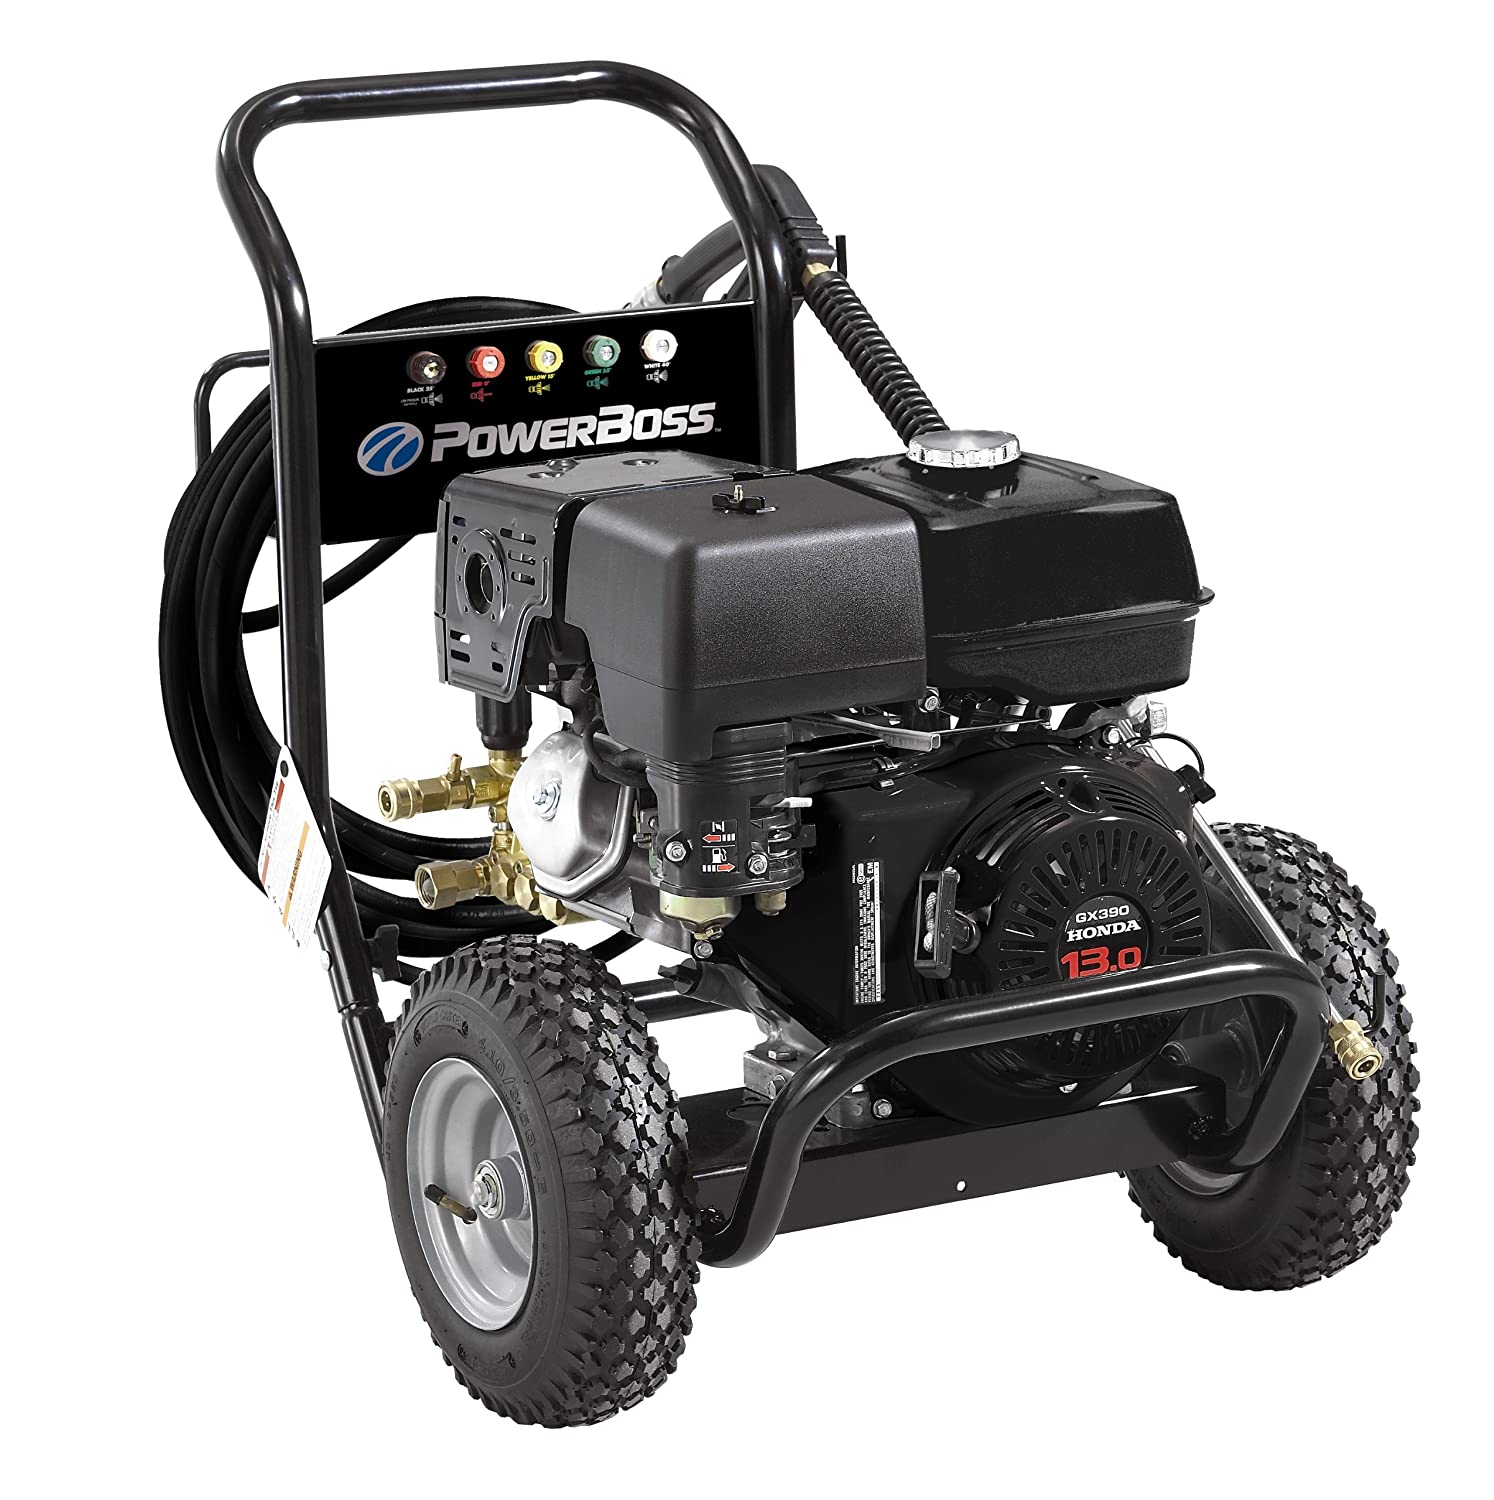 91p9tEXaliL._SL1500_ amazon com powerboss 20454 3800 psi 4 0 gpm honda gx390 389cc  at aneh.co